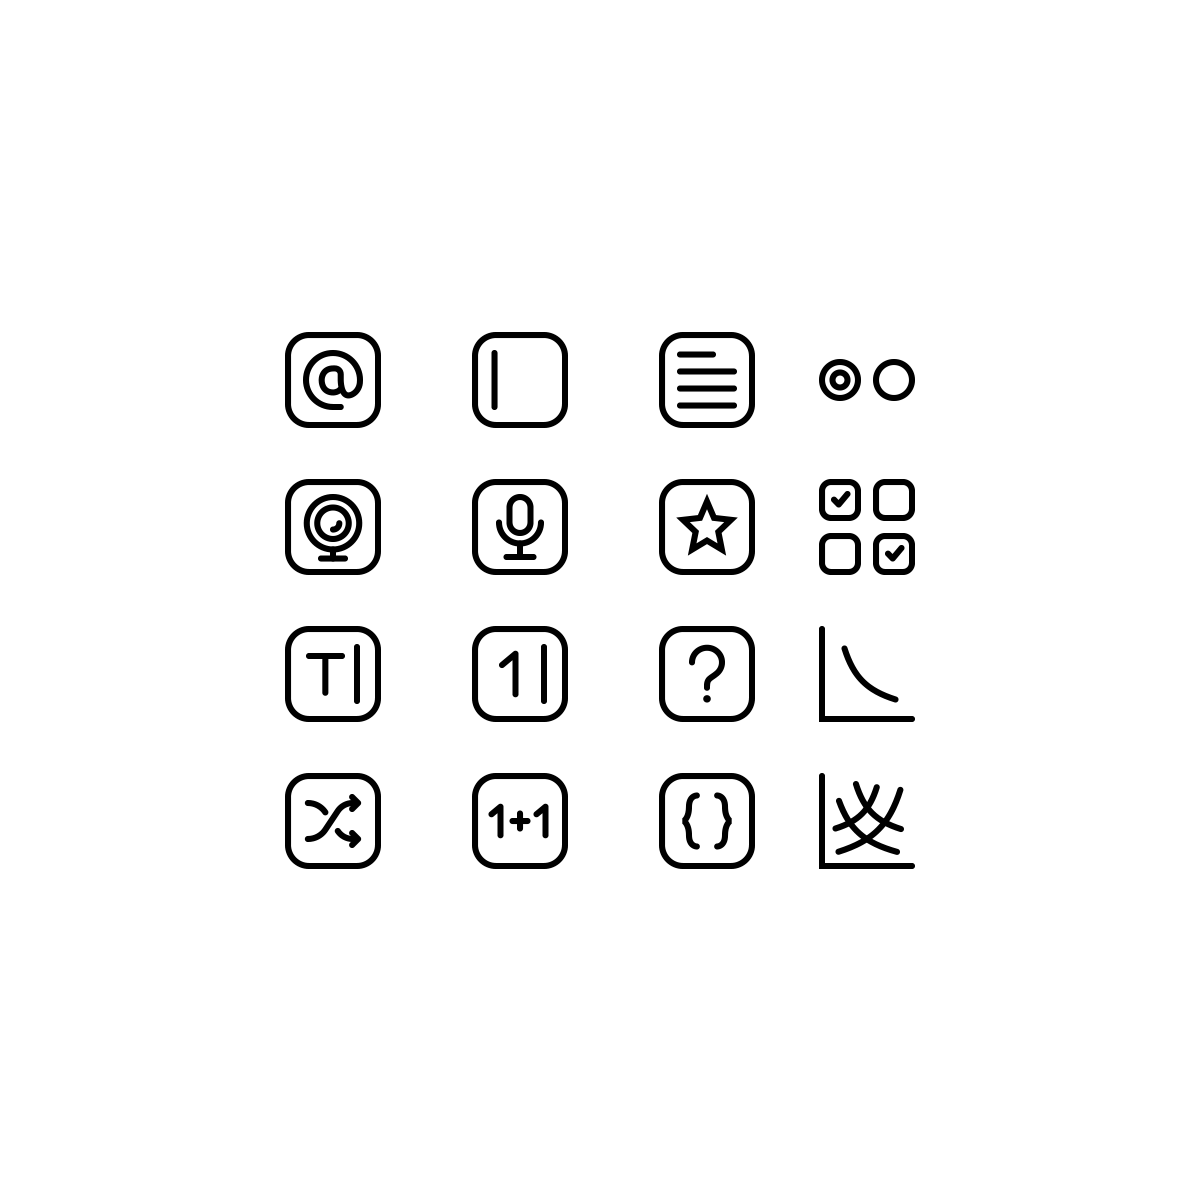 Create a set of icons for different types of survey questions